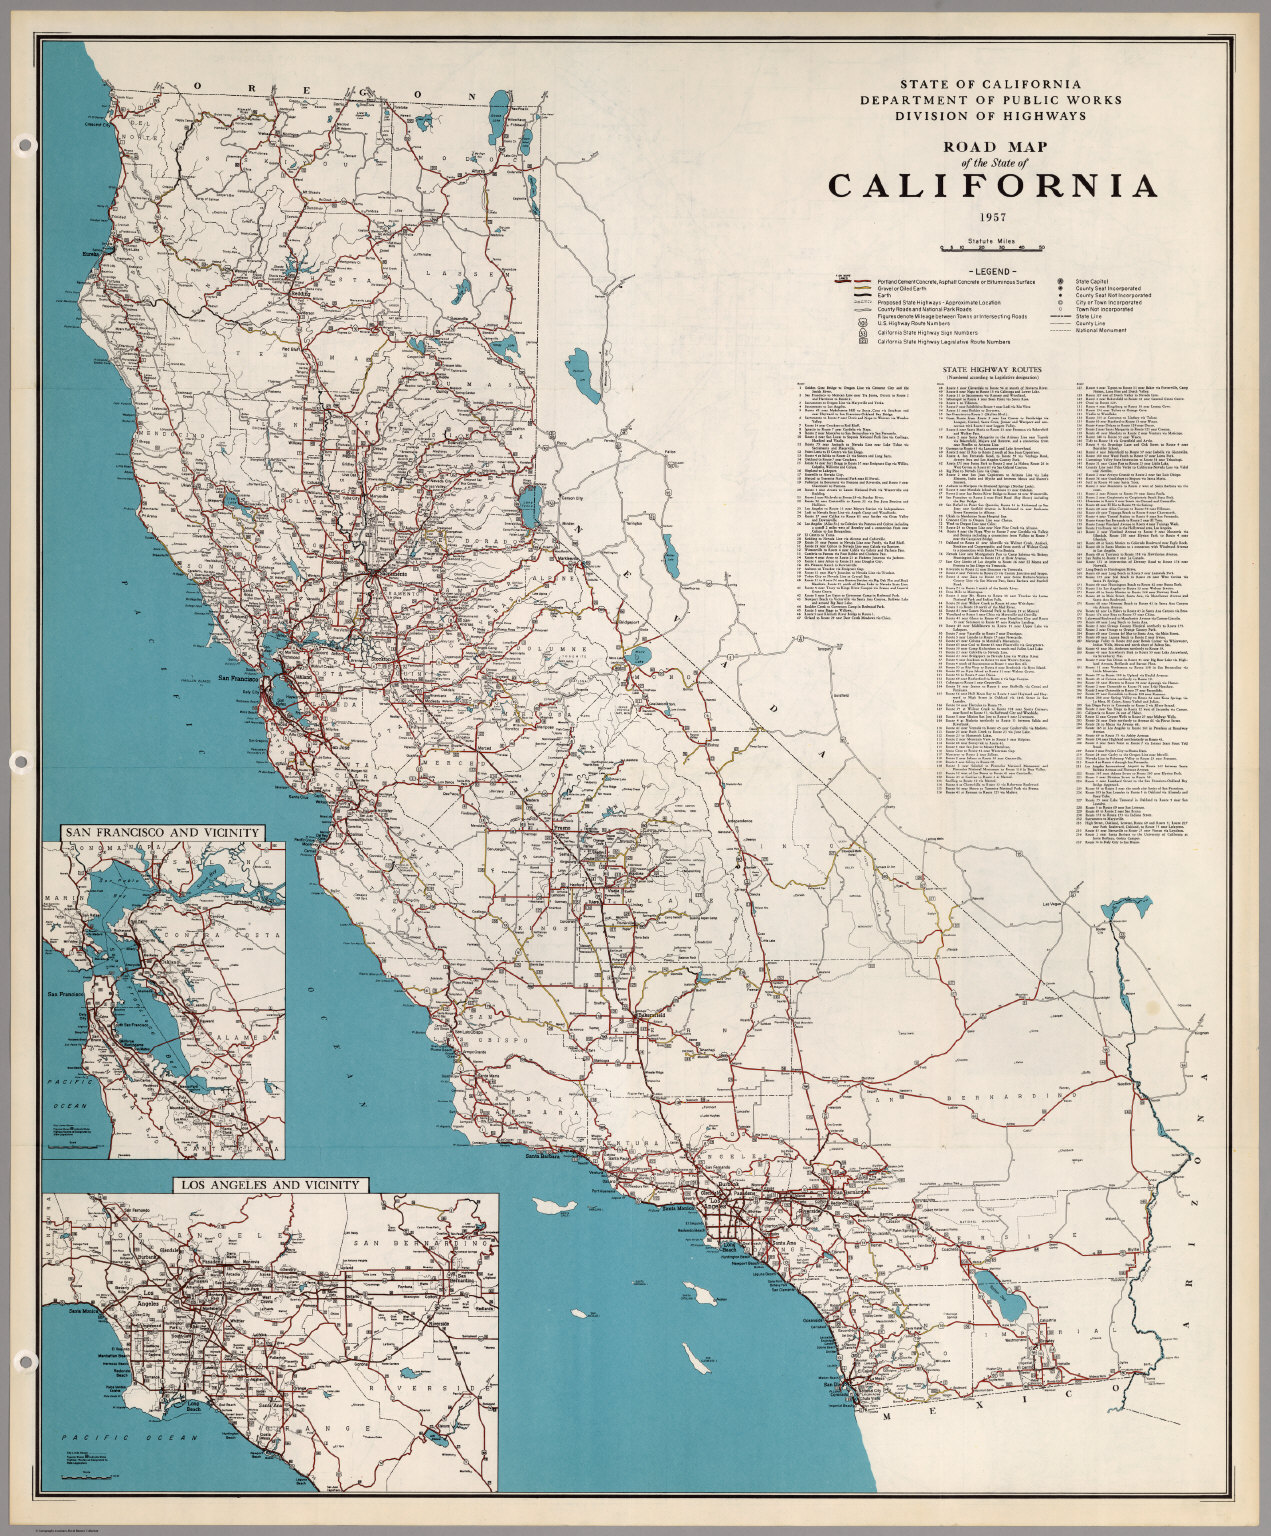 Road Map of the State of California, 1957. - David Rumsey Historical ...